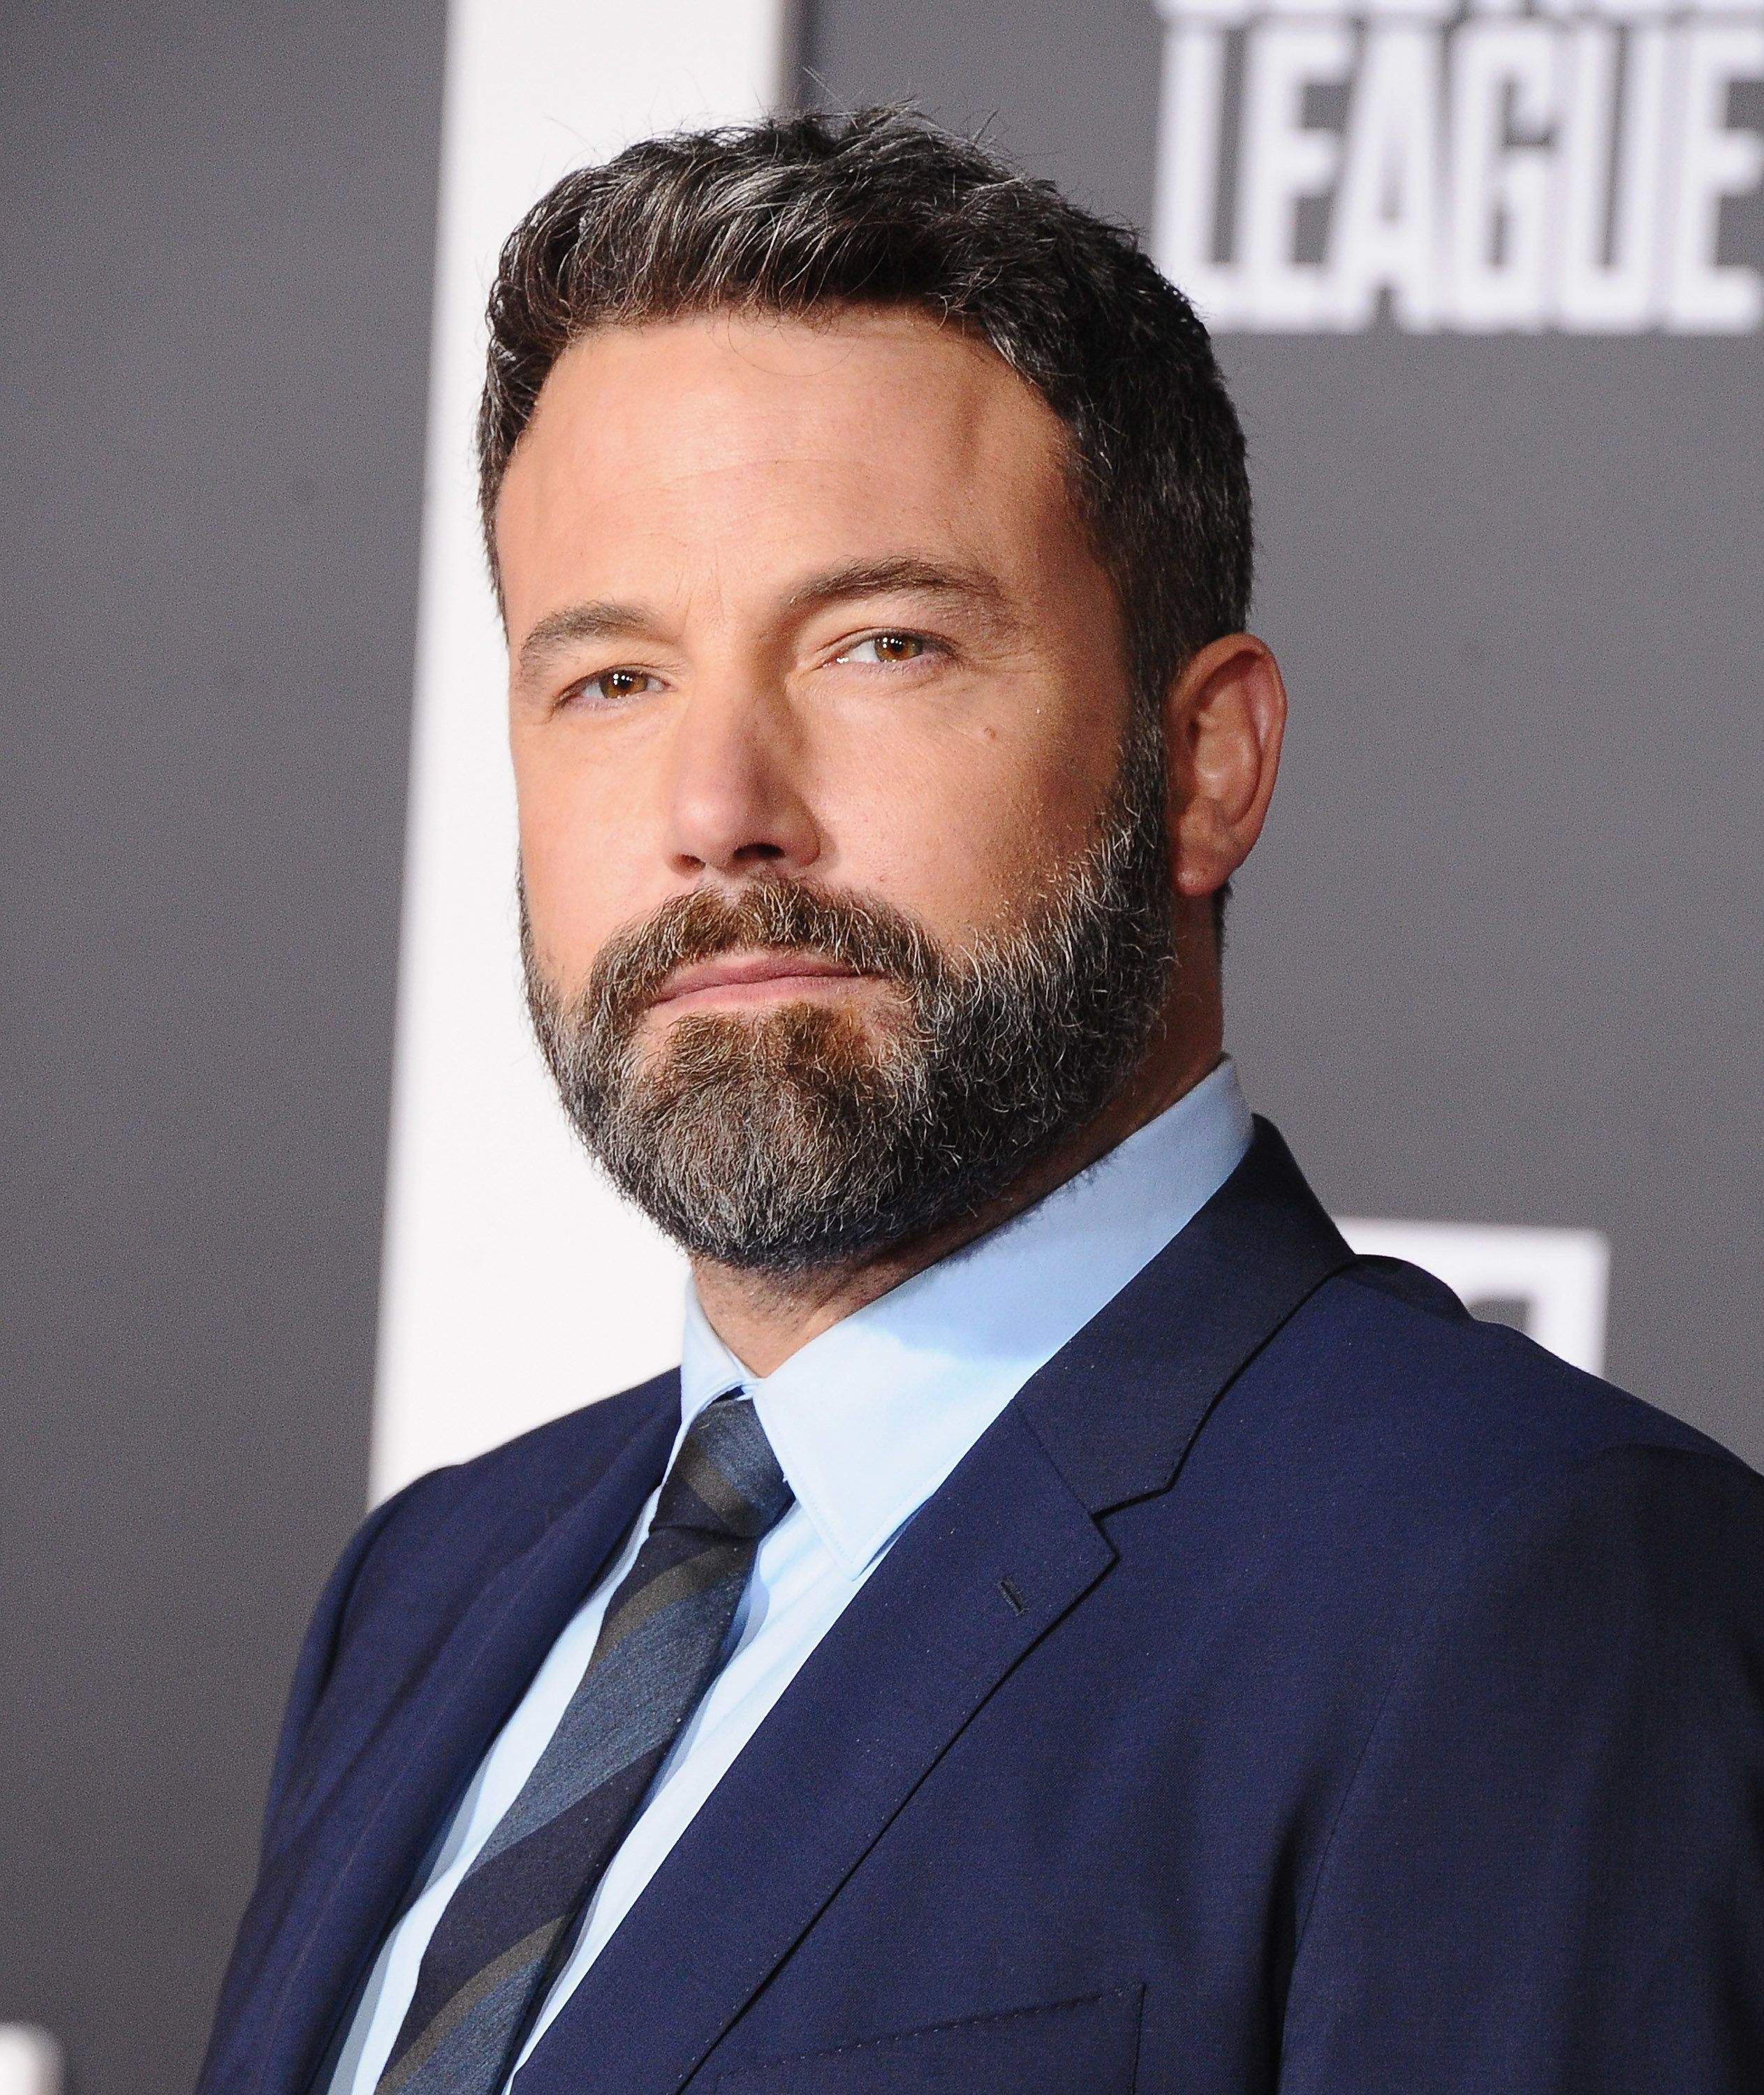 Justice League: Ben Affleck REPLACEMENT eyed by The Batman solo movie director